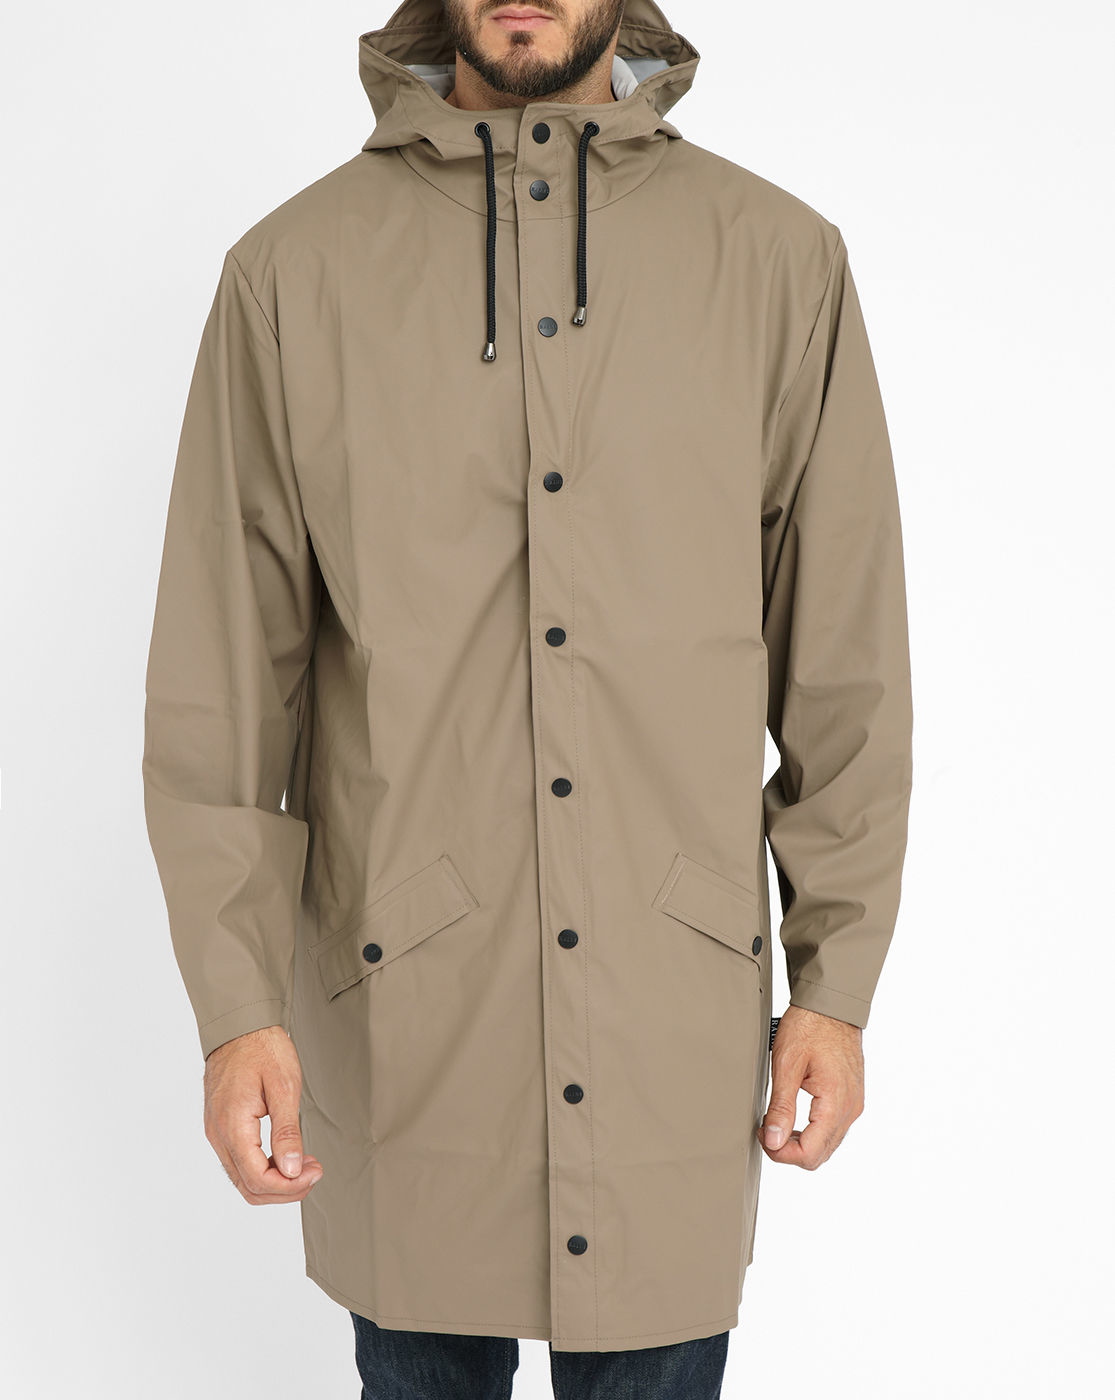 Mens Long Waterproof Jacket | Fit Jacket